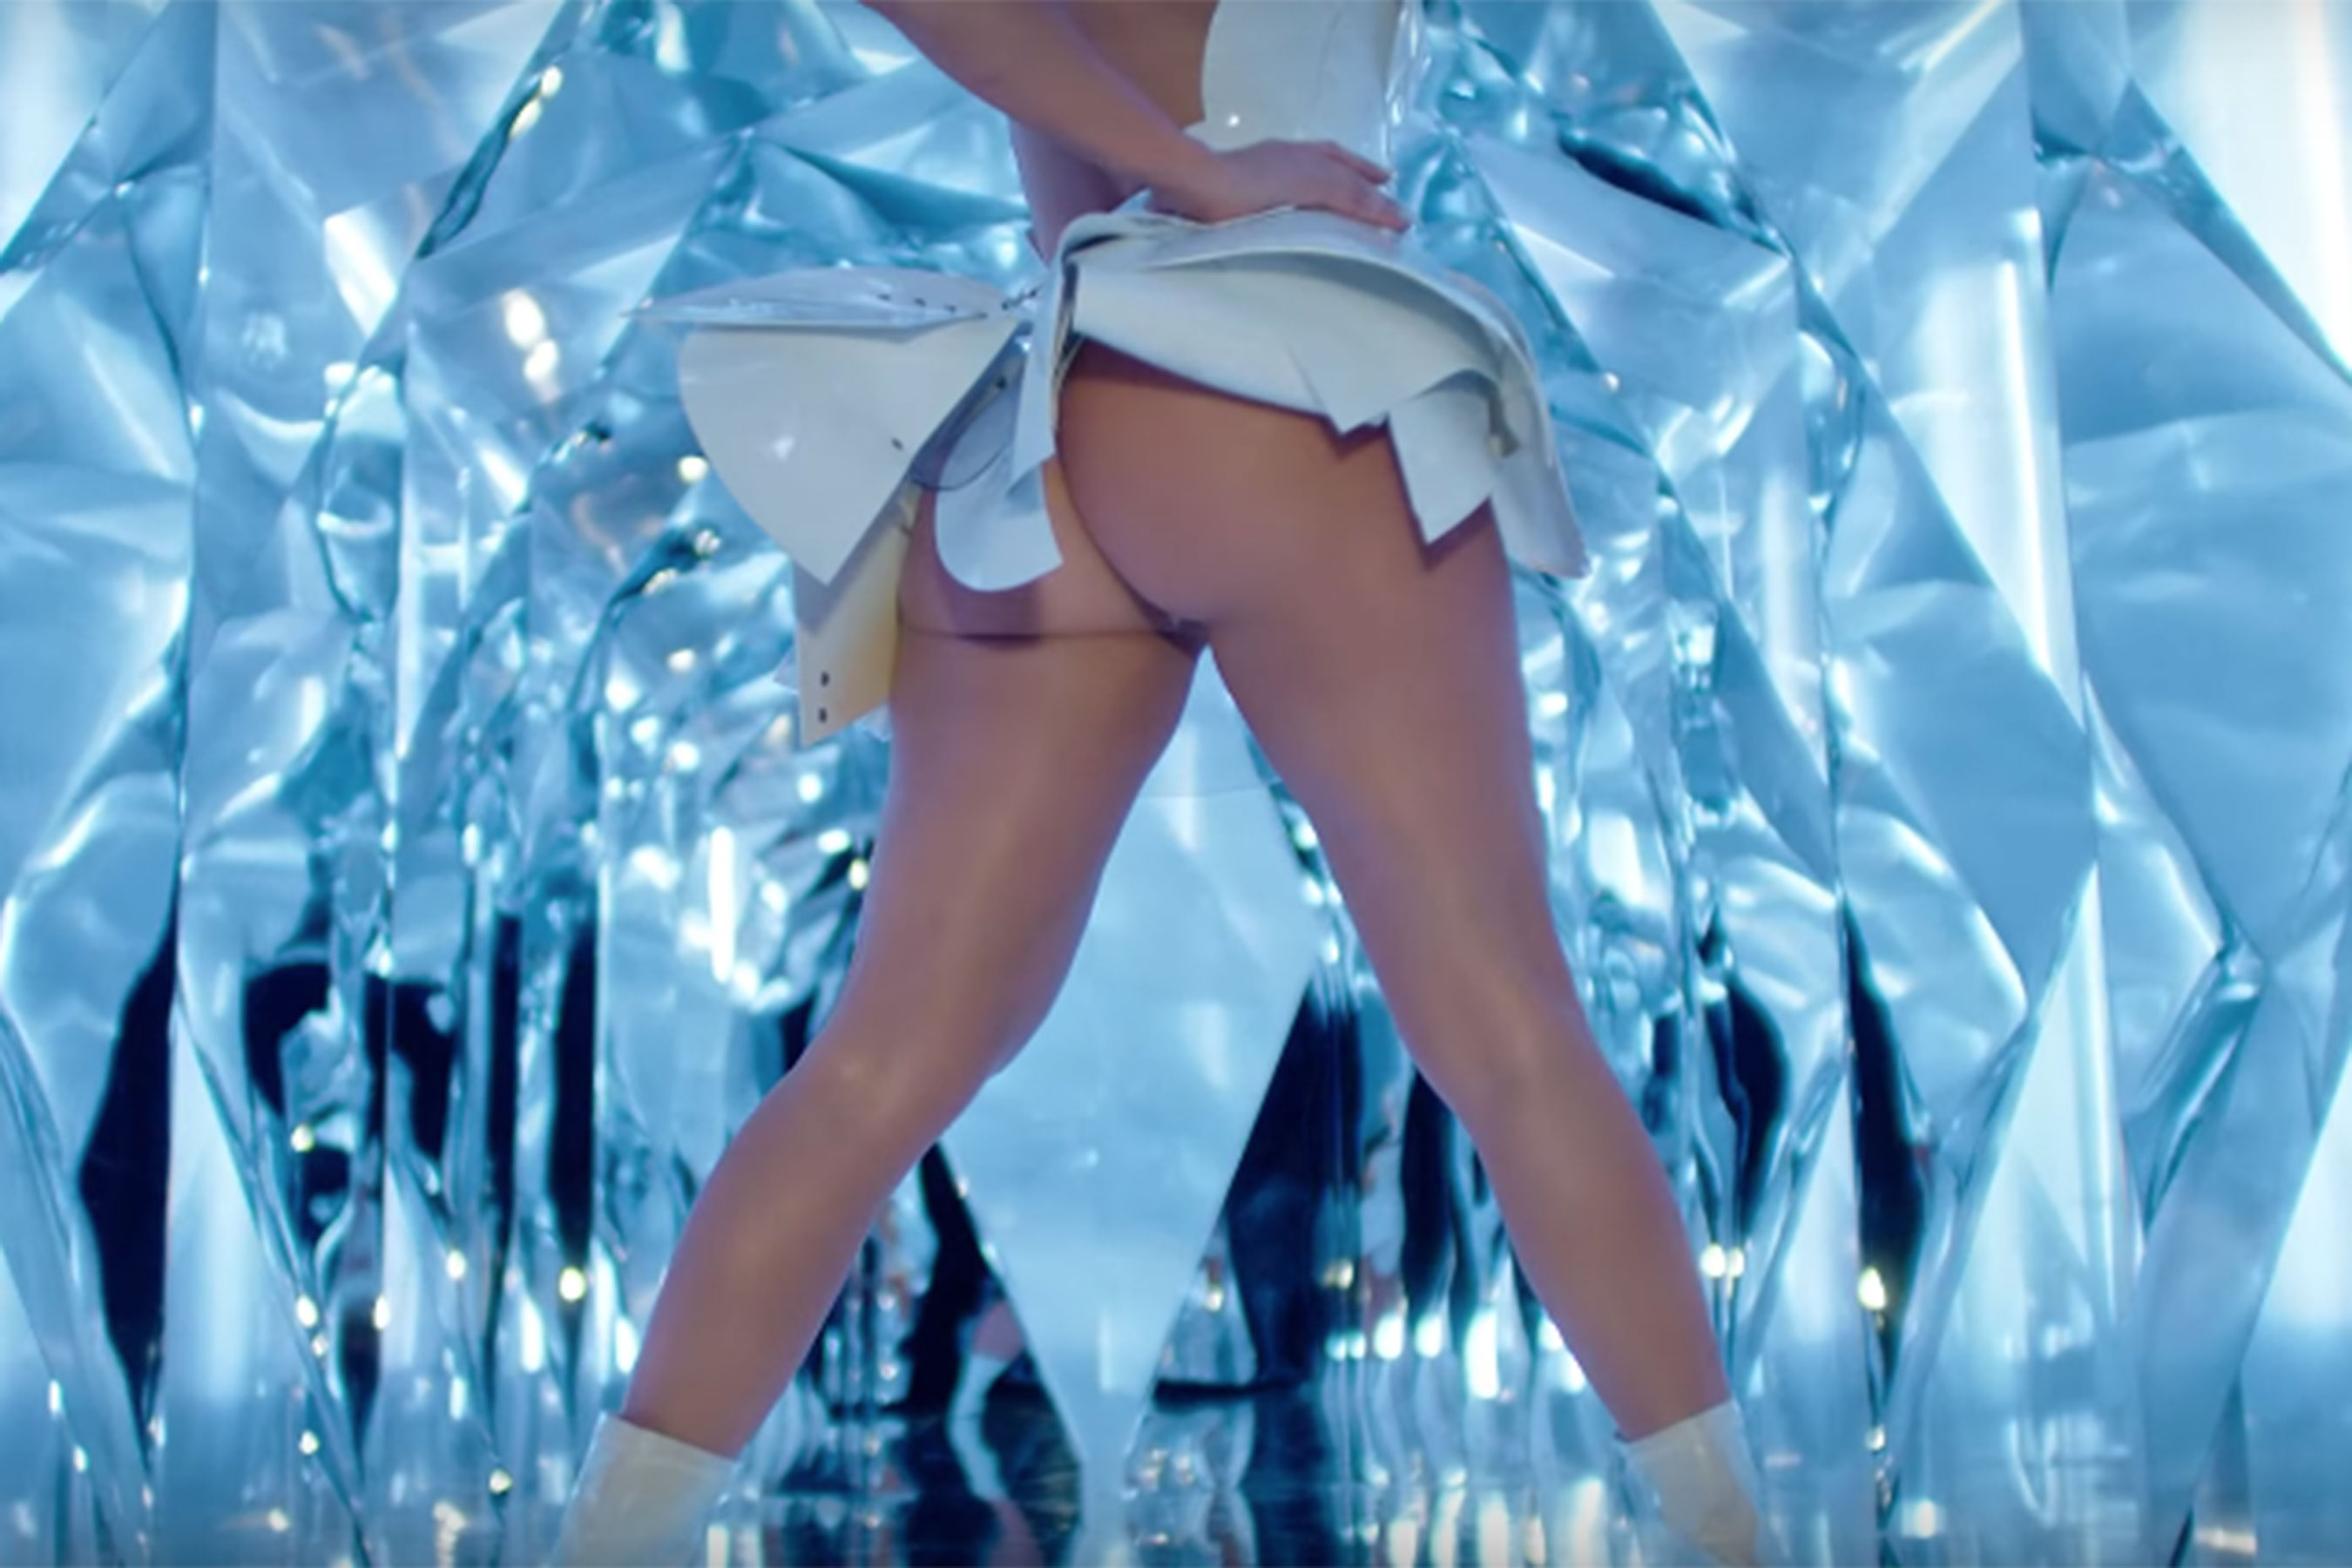 JLo Bares Her Booty in Her Music Video for 'Medicine'